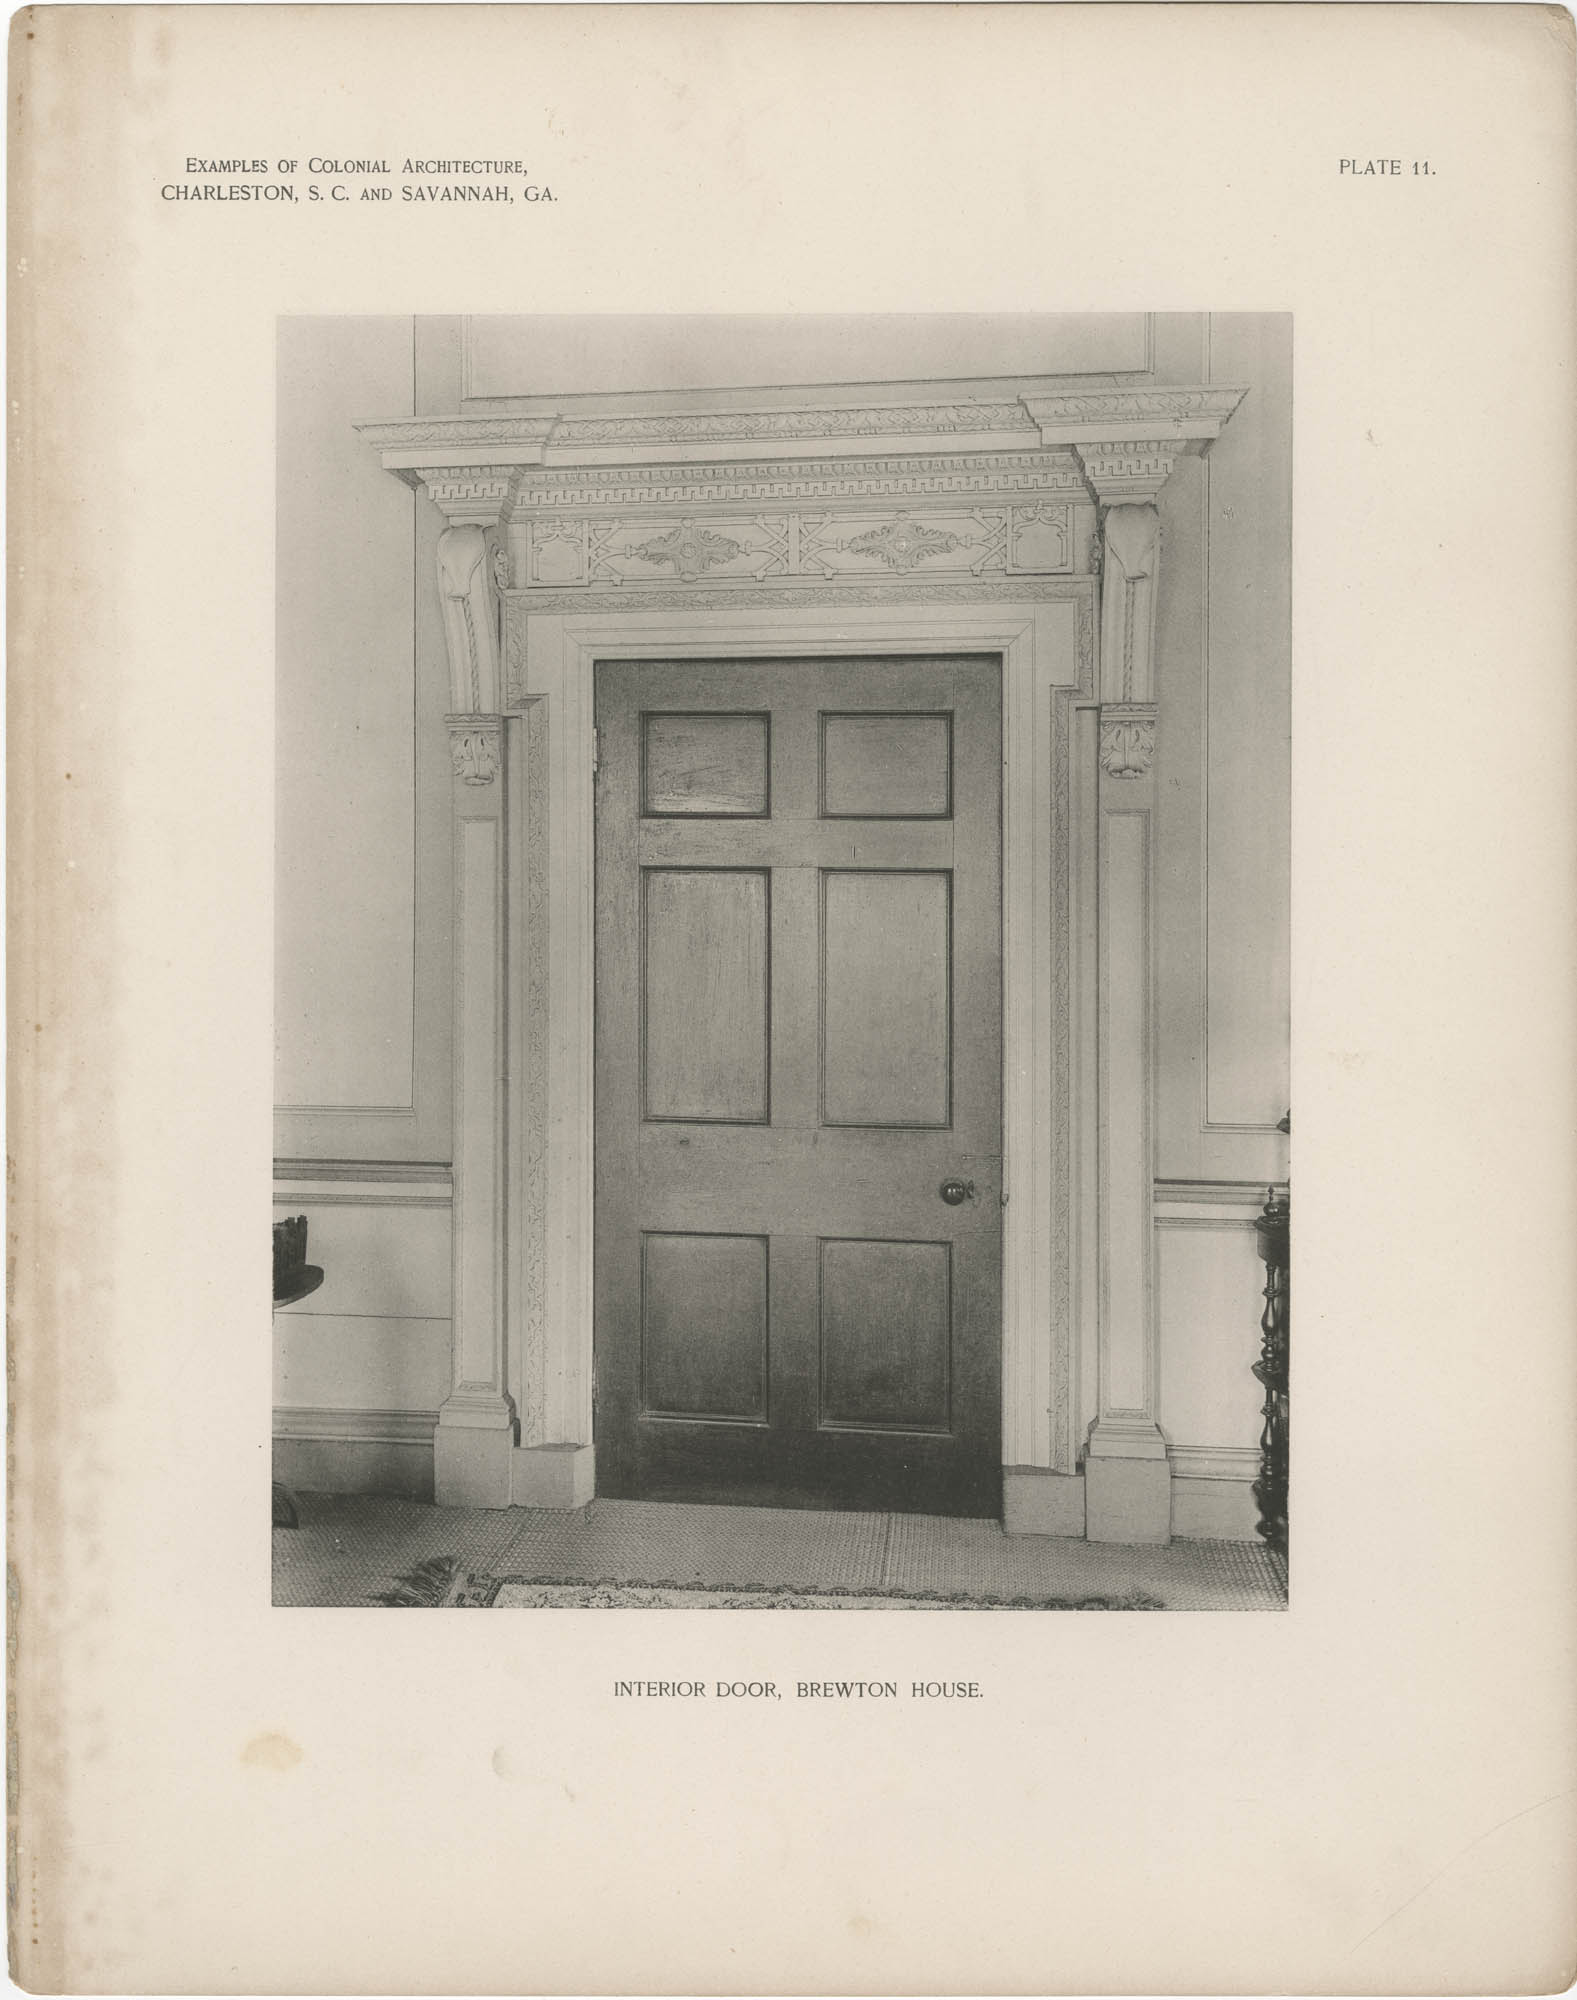 Plate 11: Interior Door, Brewton House